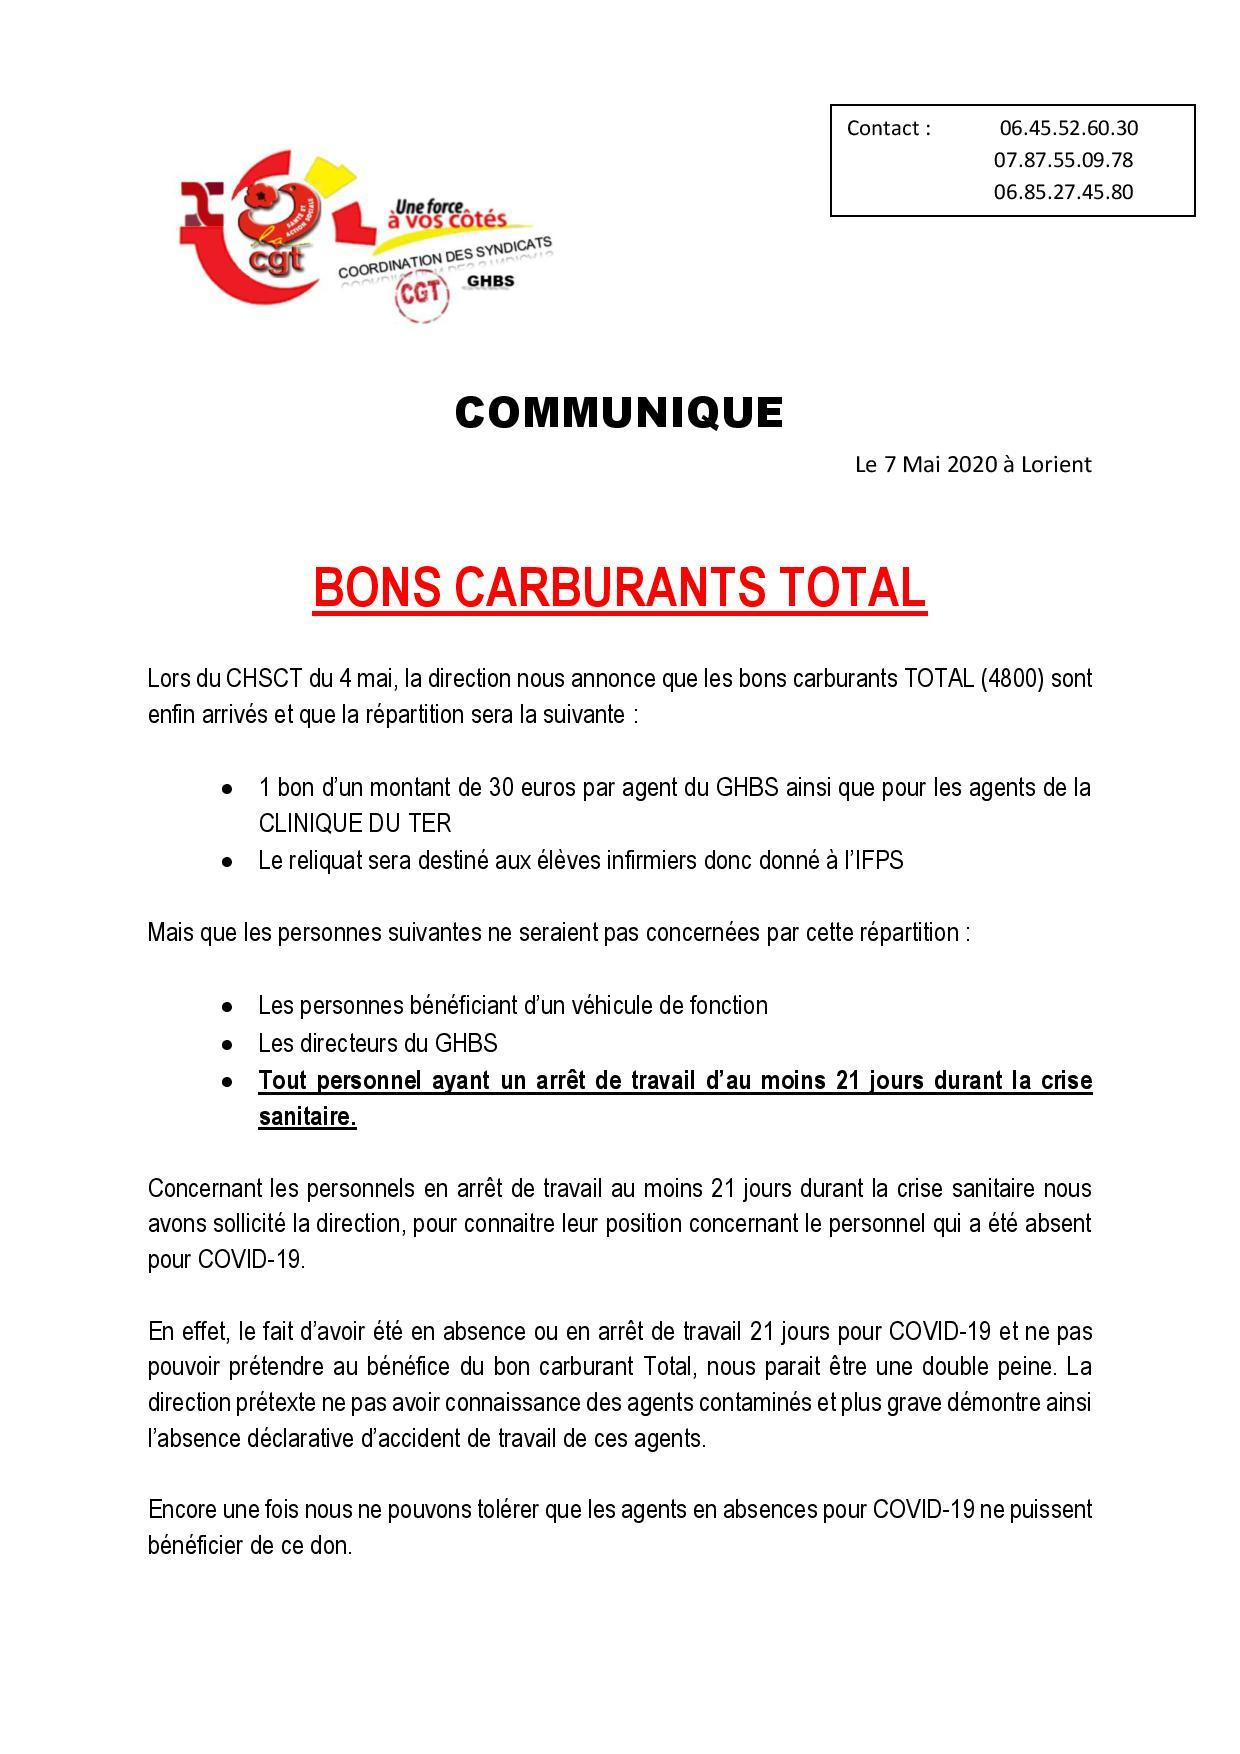 06052020 communique cds cgt ghbs bons carburant total page 001 1